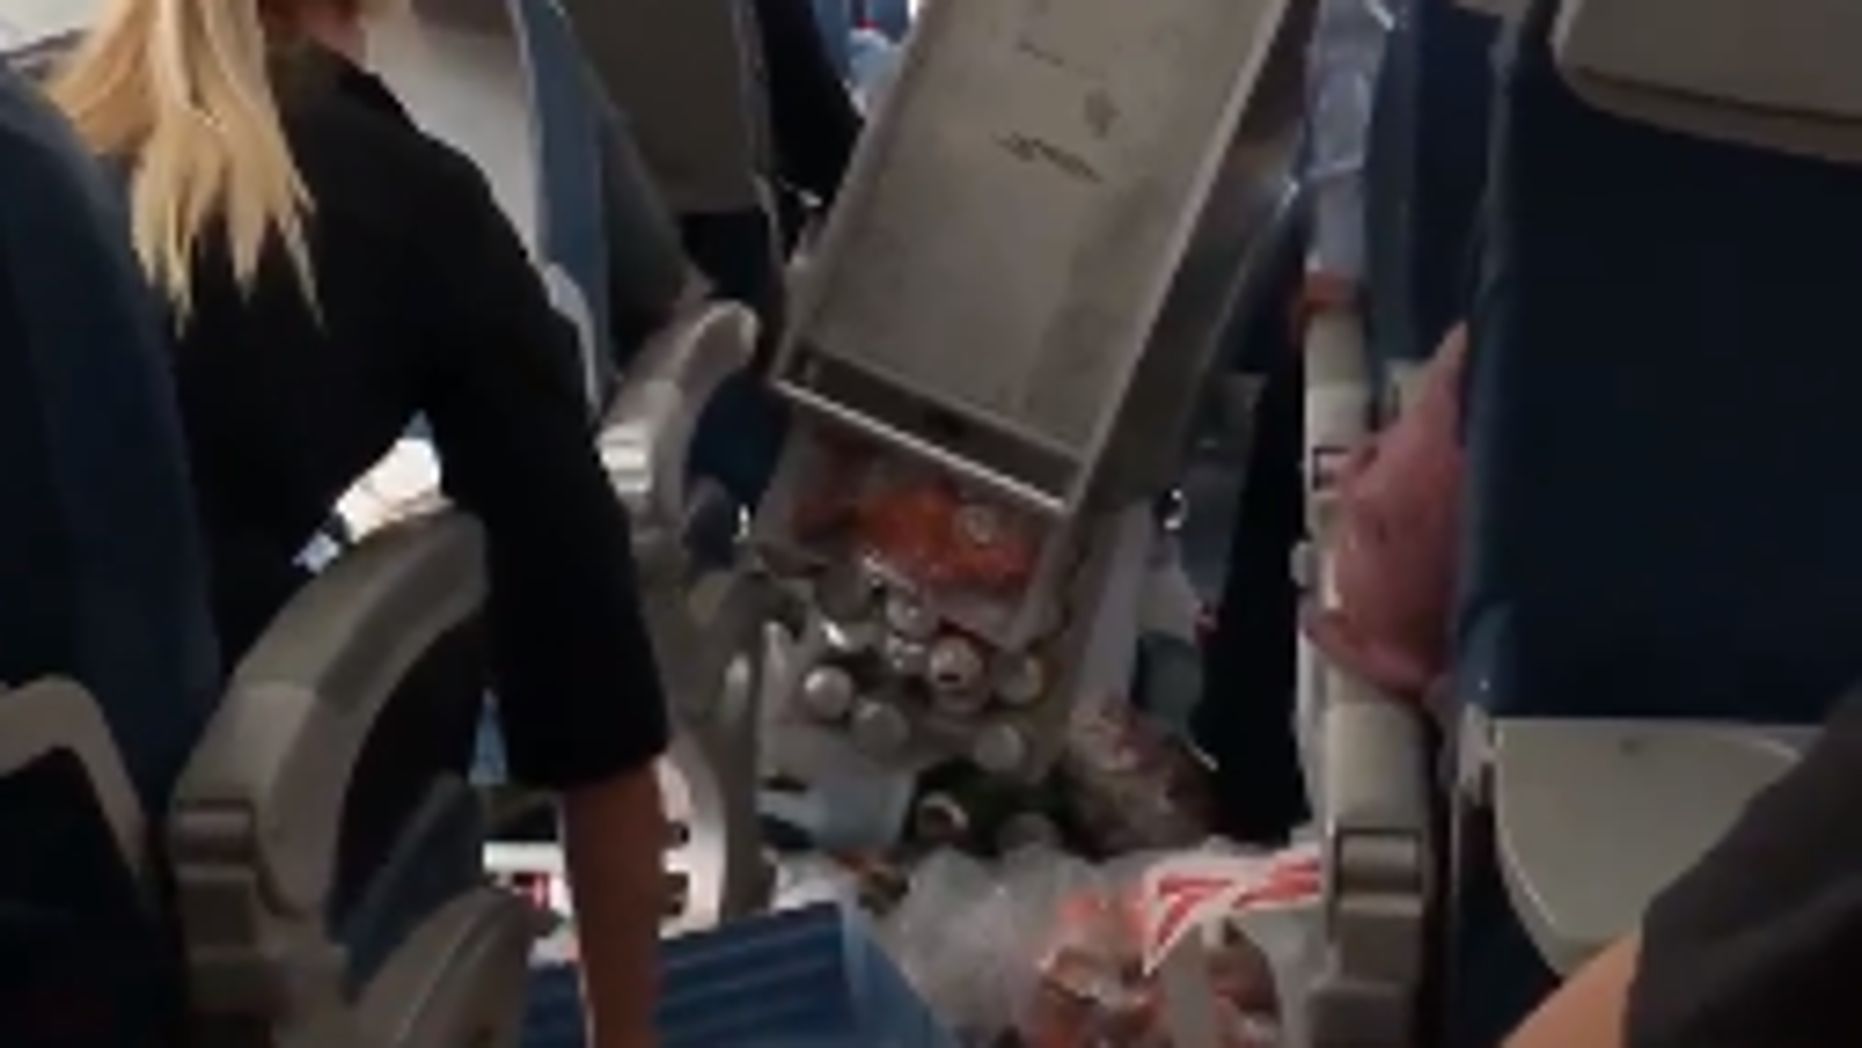 Video from the flight 5763, the chaotic flight on the onboard phone.